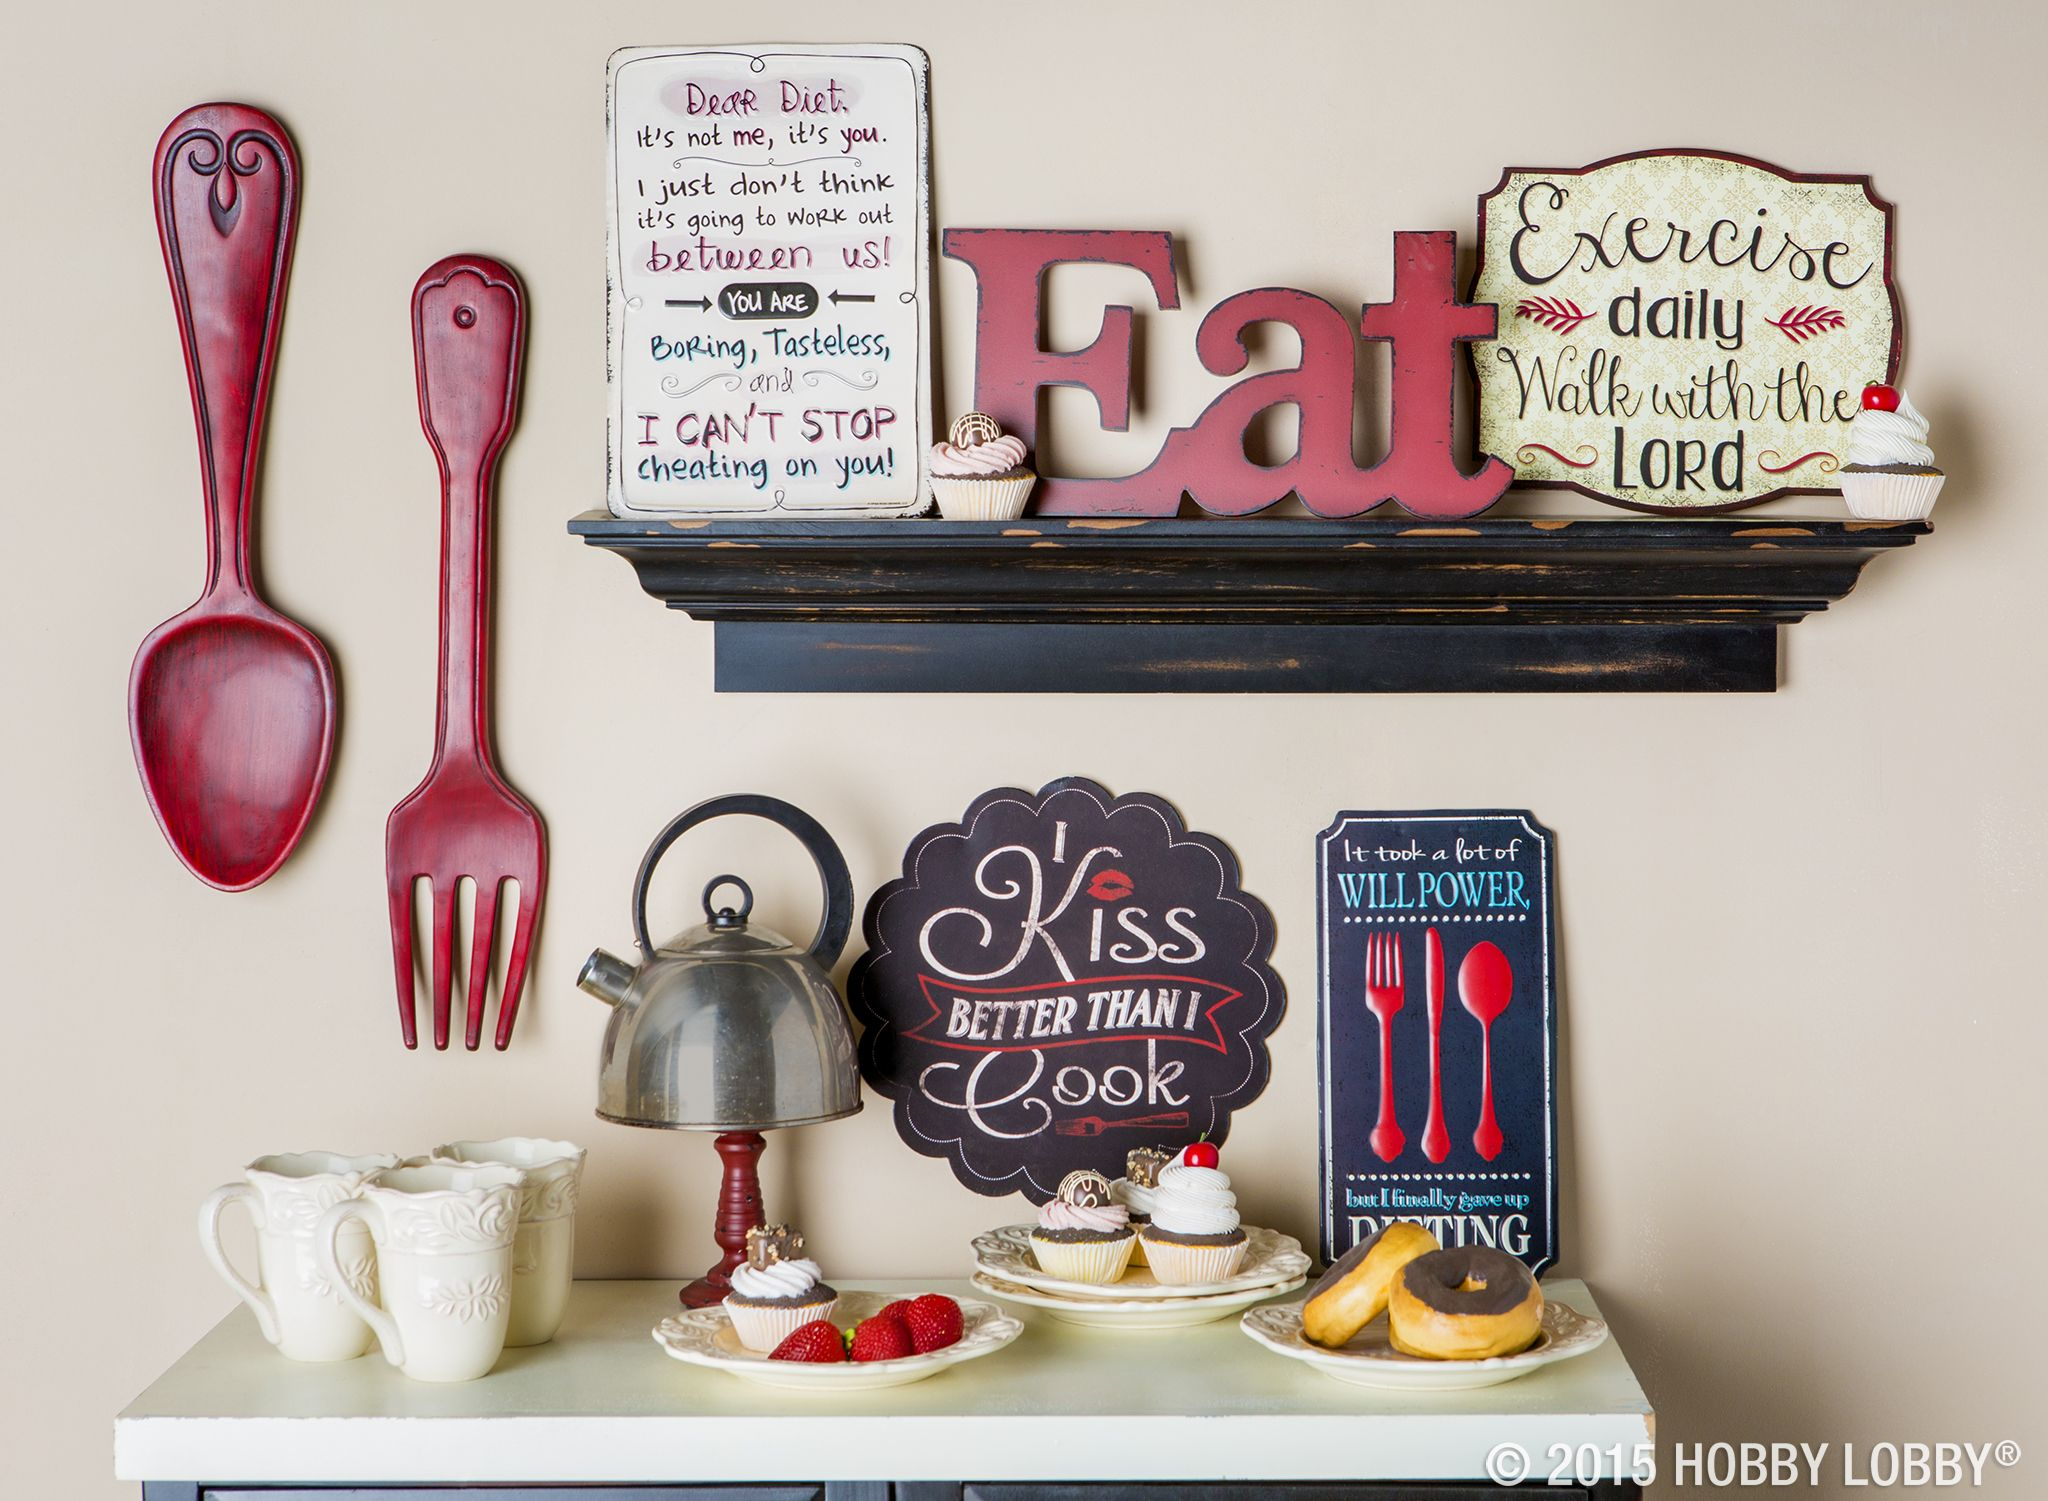 Red Fork Wall Decor Hobby Lobby 733097 Kitchen Decor Signs Rustic Kitchen Decor Kitchen Accessories Decor